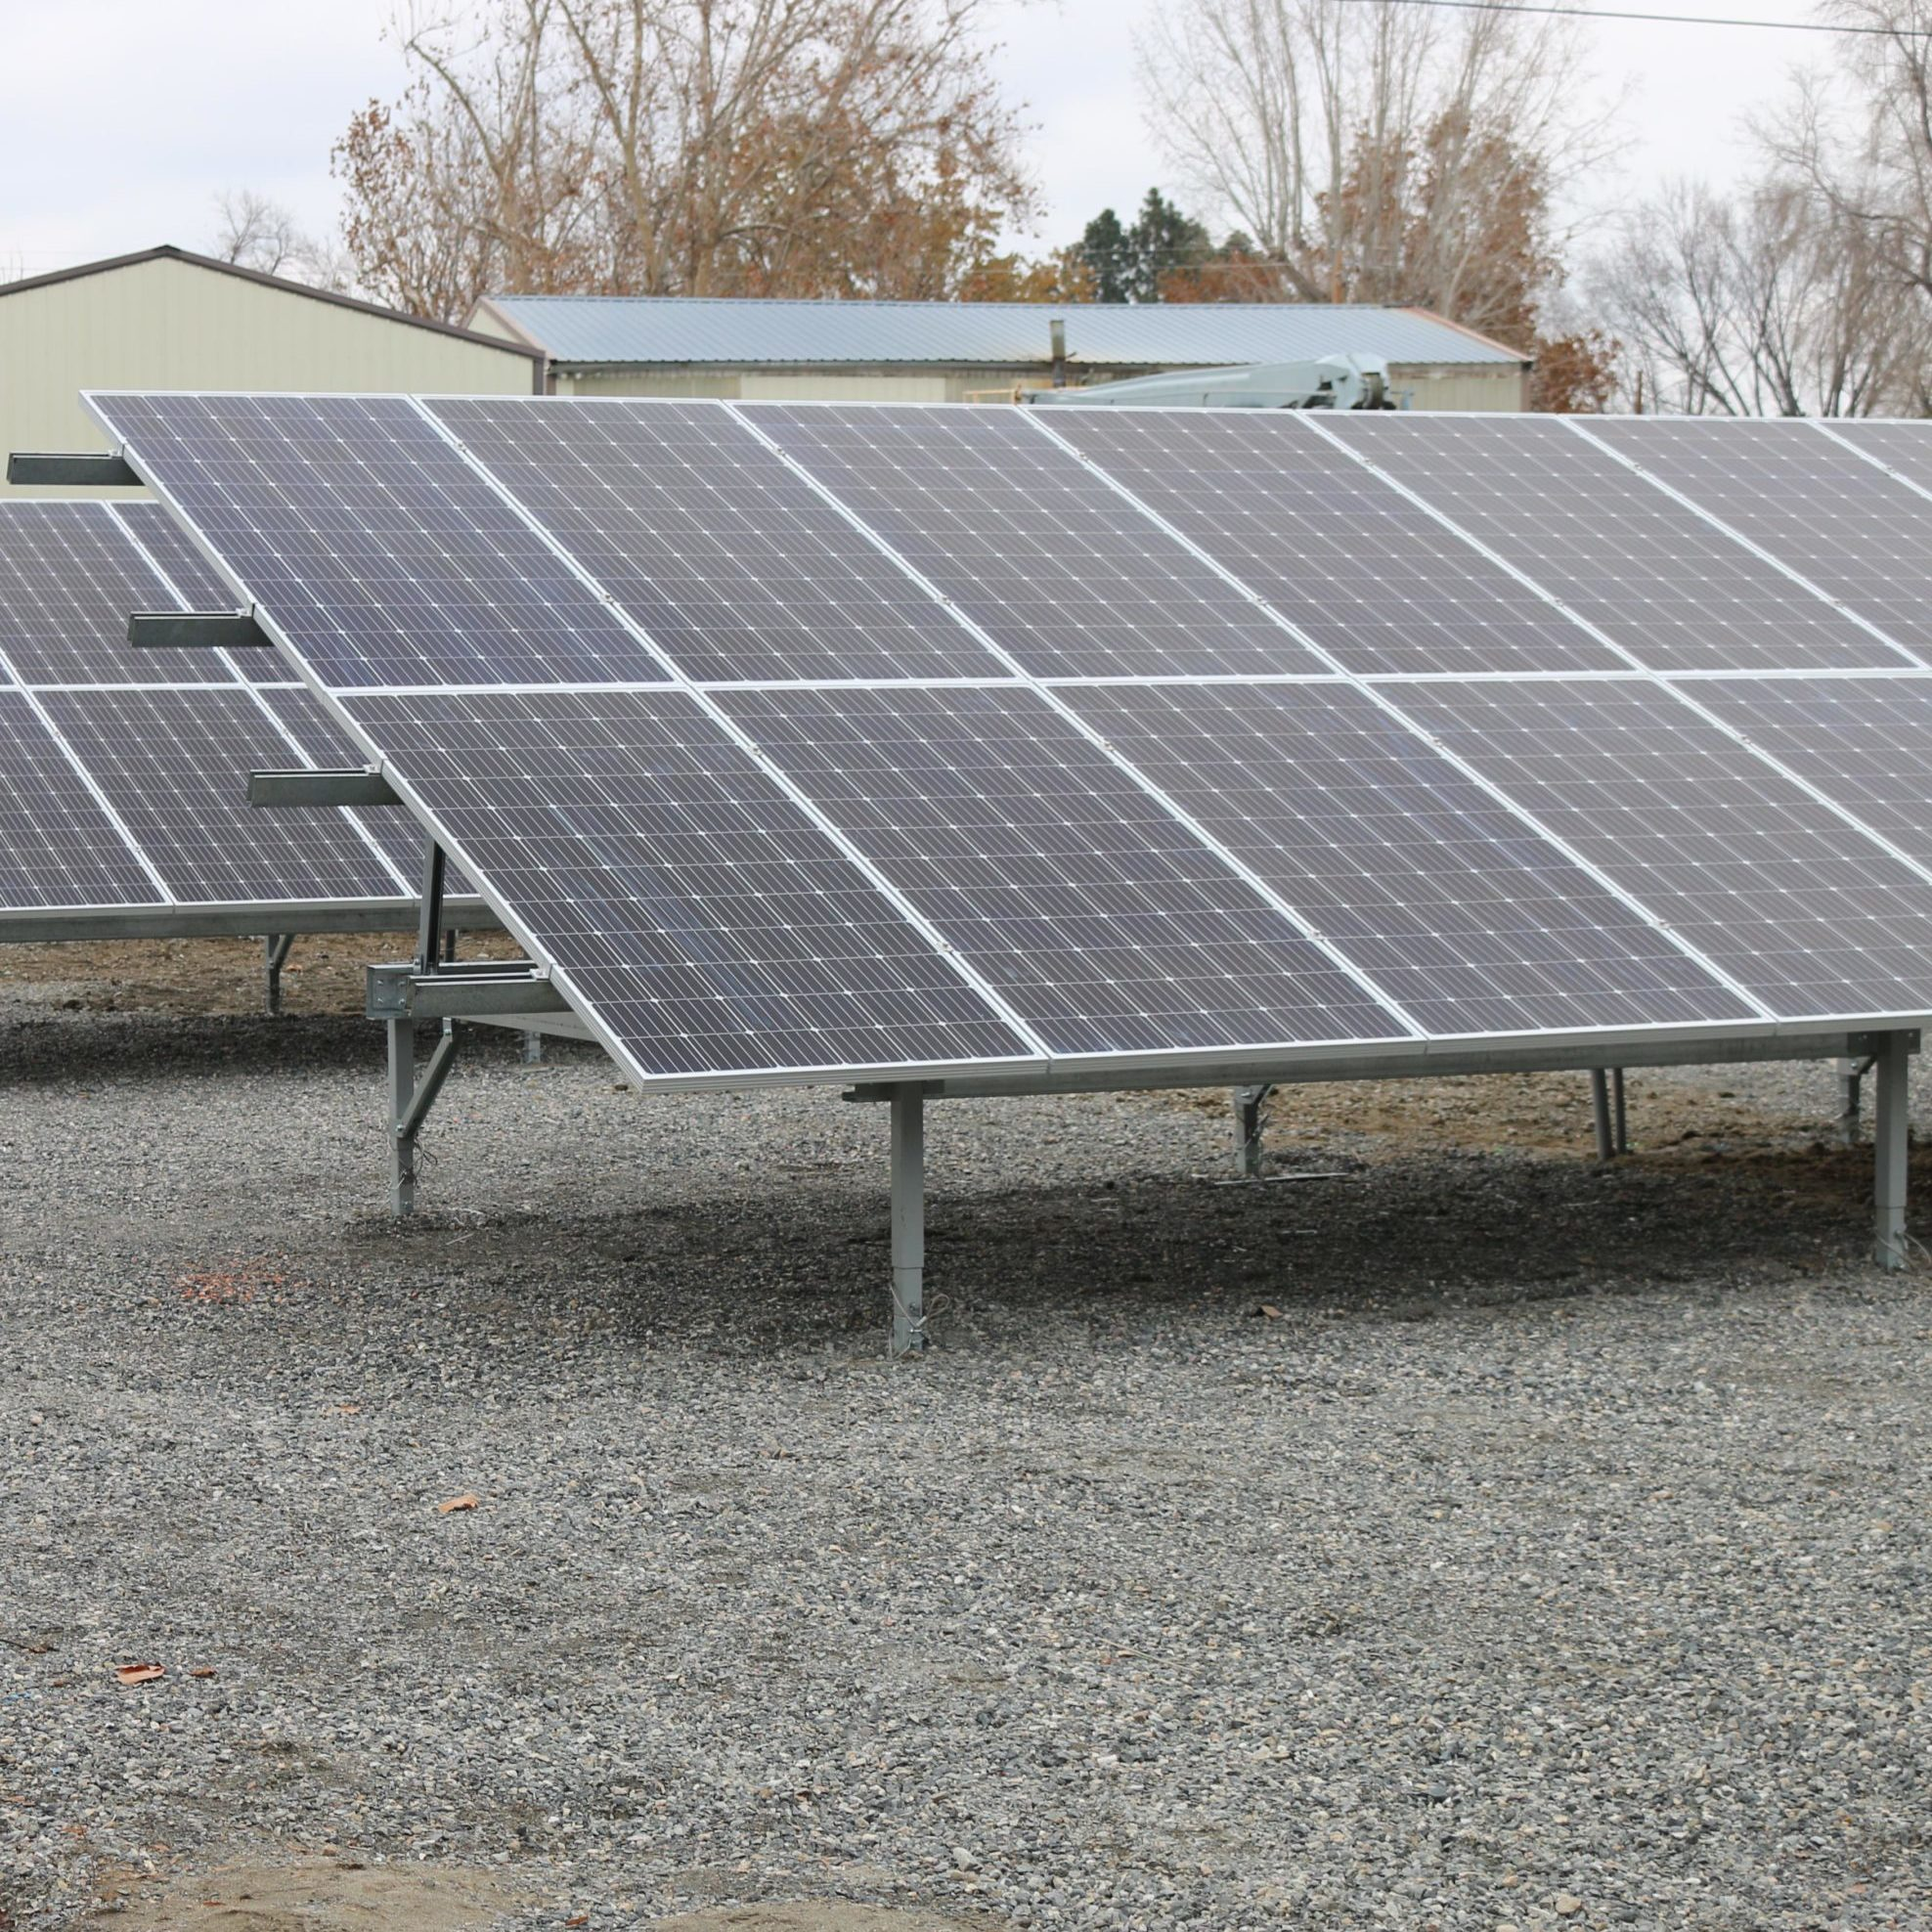 Solar panels at Benton REA's Community Solar Project